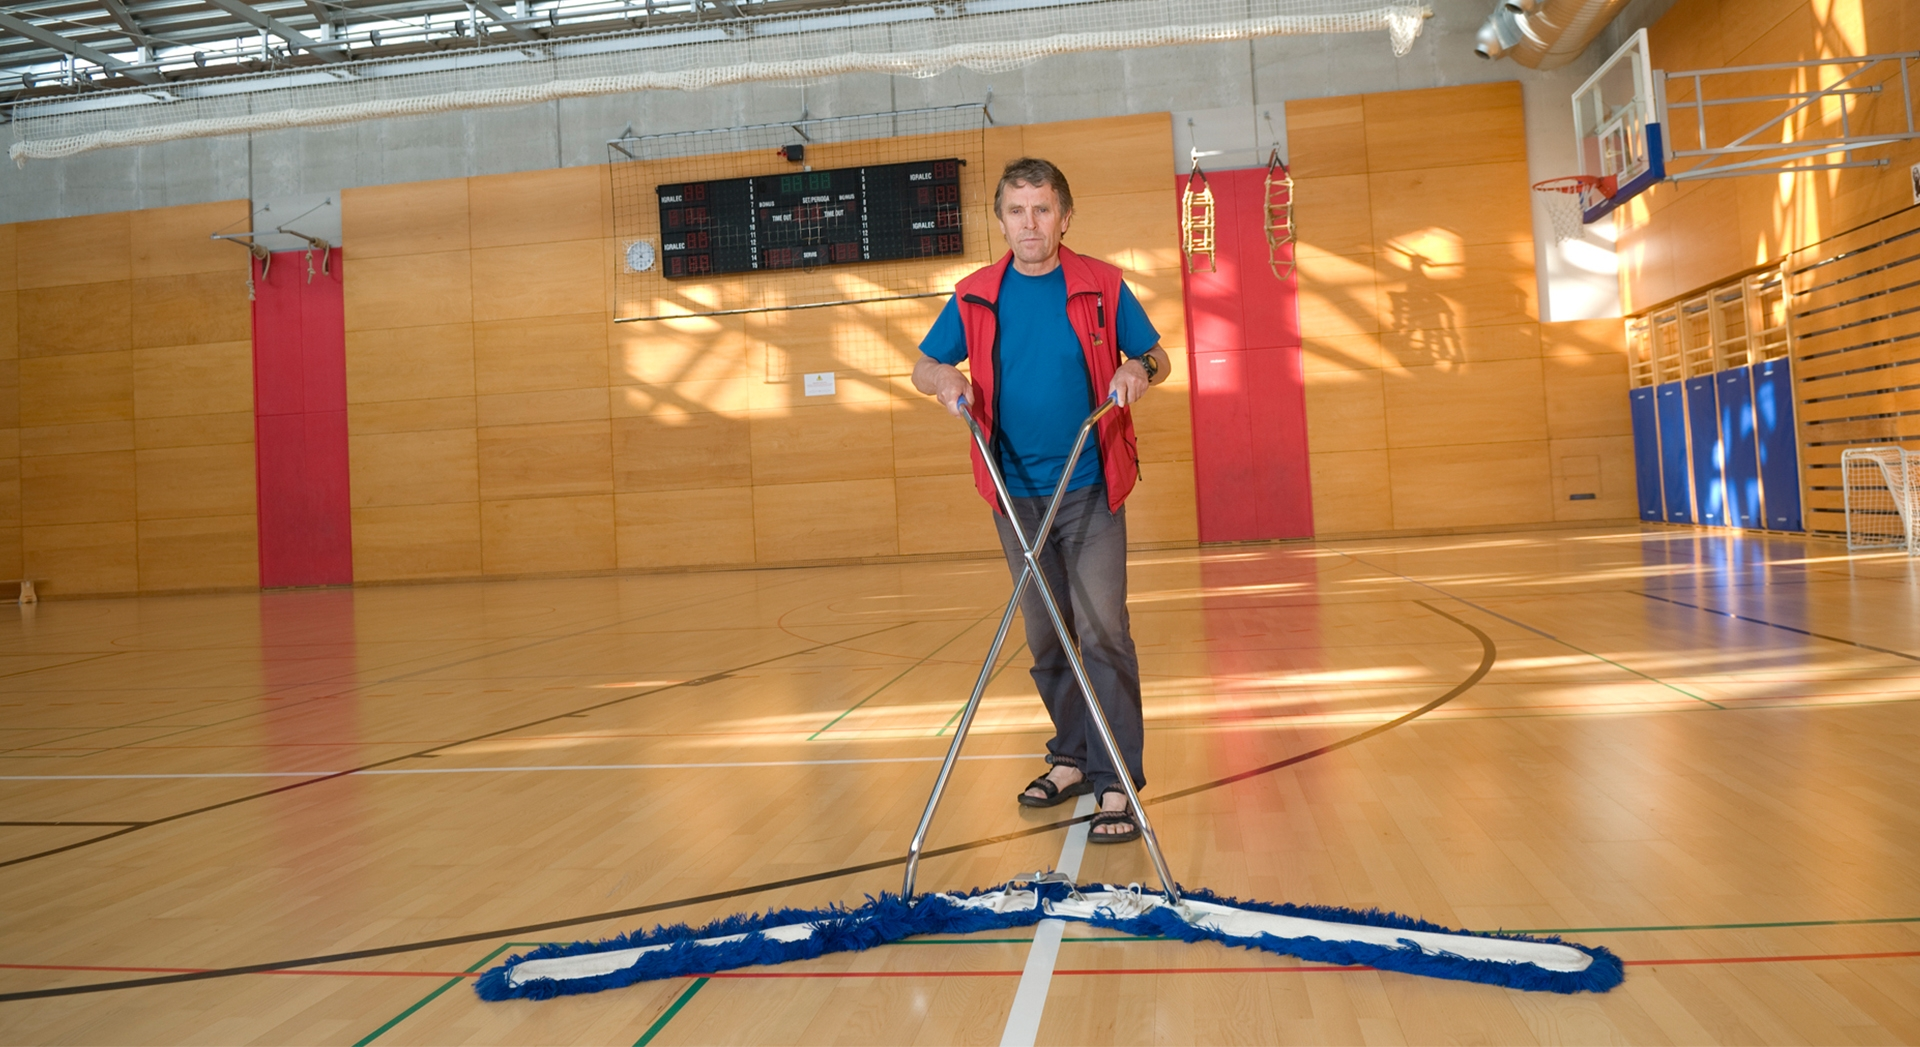 5 essential steps for maintaining your sports floor